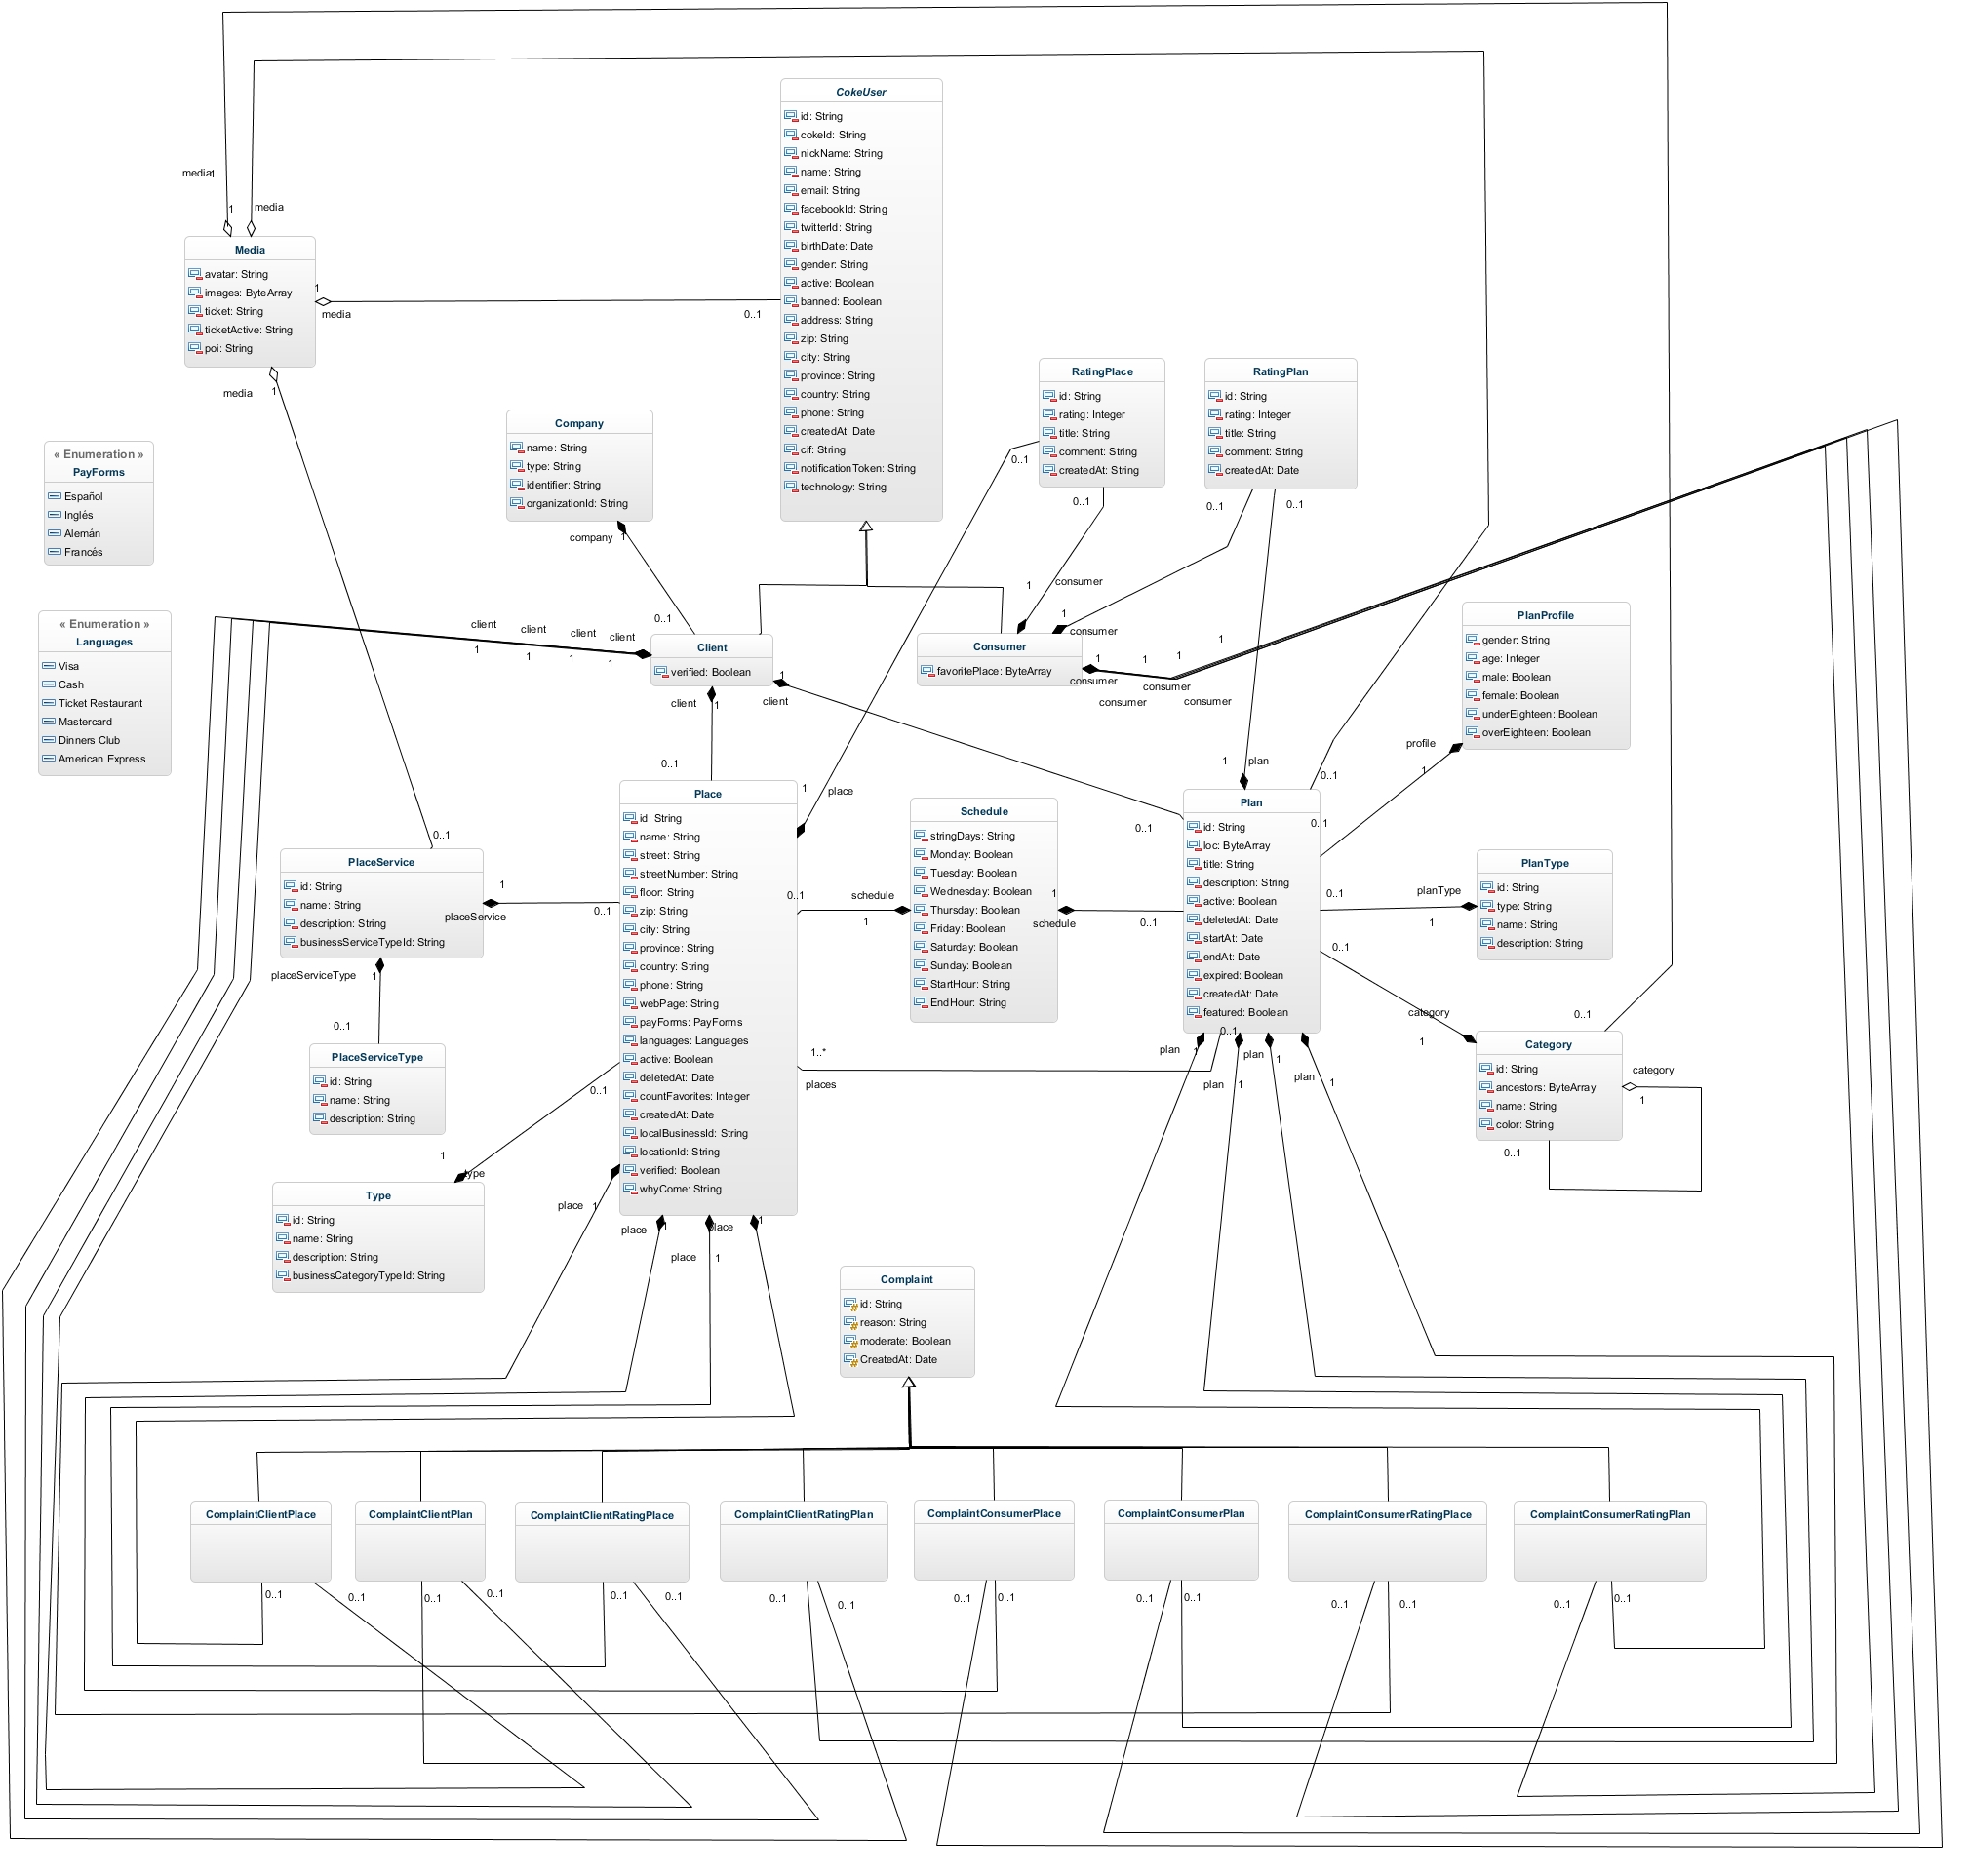 5 Great Uml Models Last Week The Genmymodel Blog Diagram As Well Bpmn Collaboration Diagrams On Database Tools We Were Astonished By All Associations In This Class Setmoya